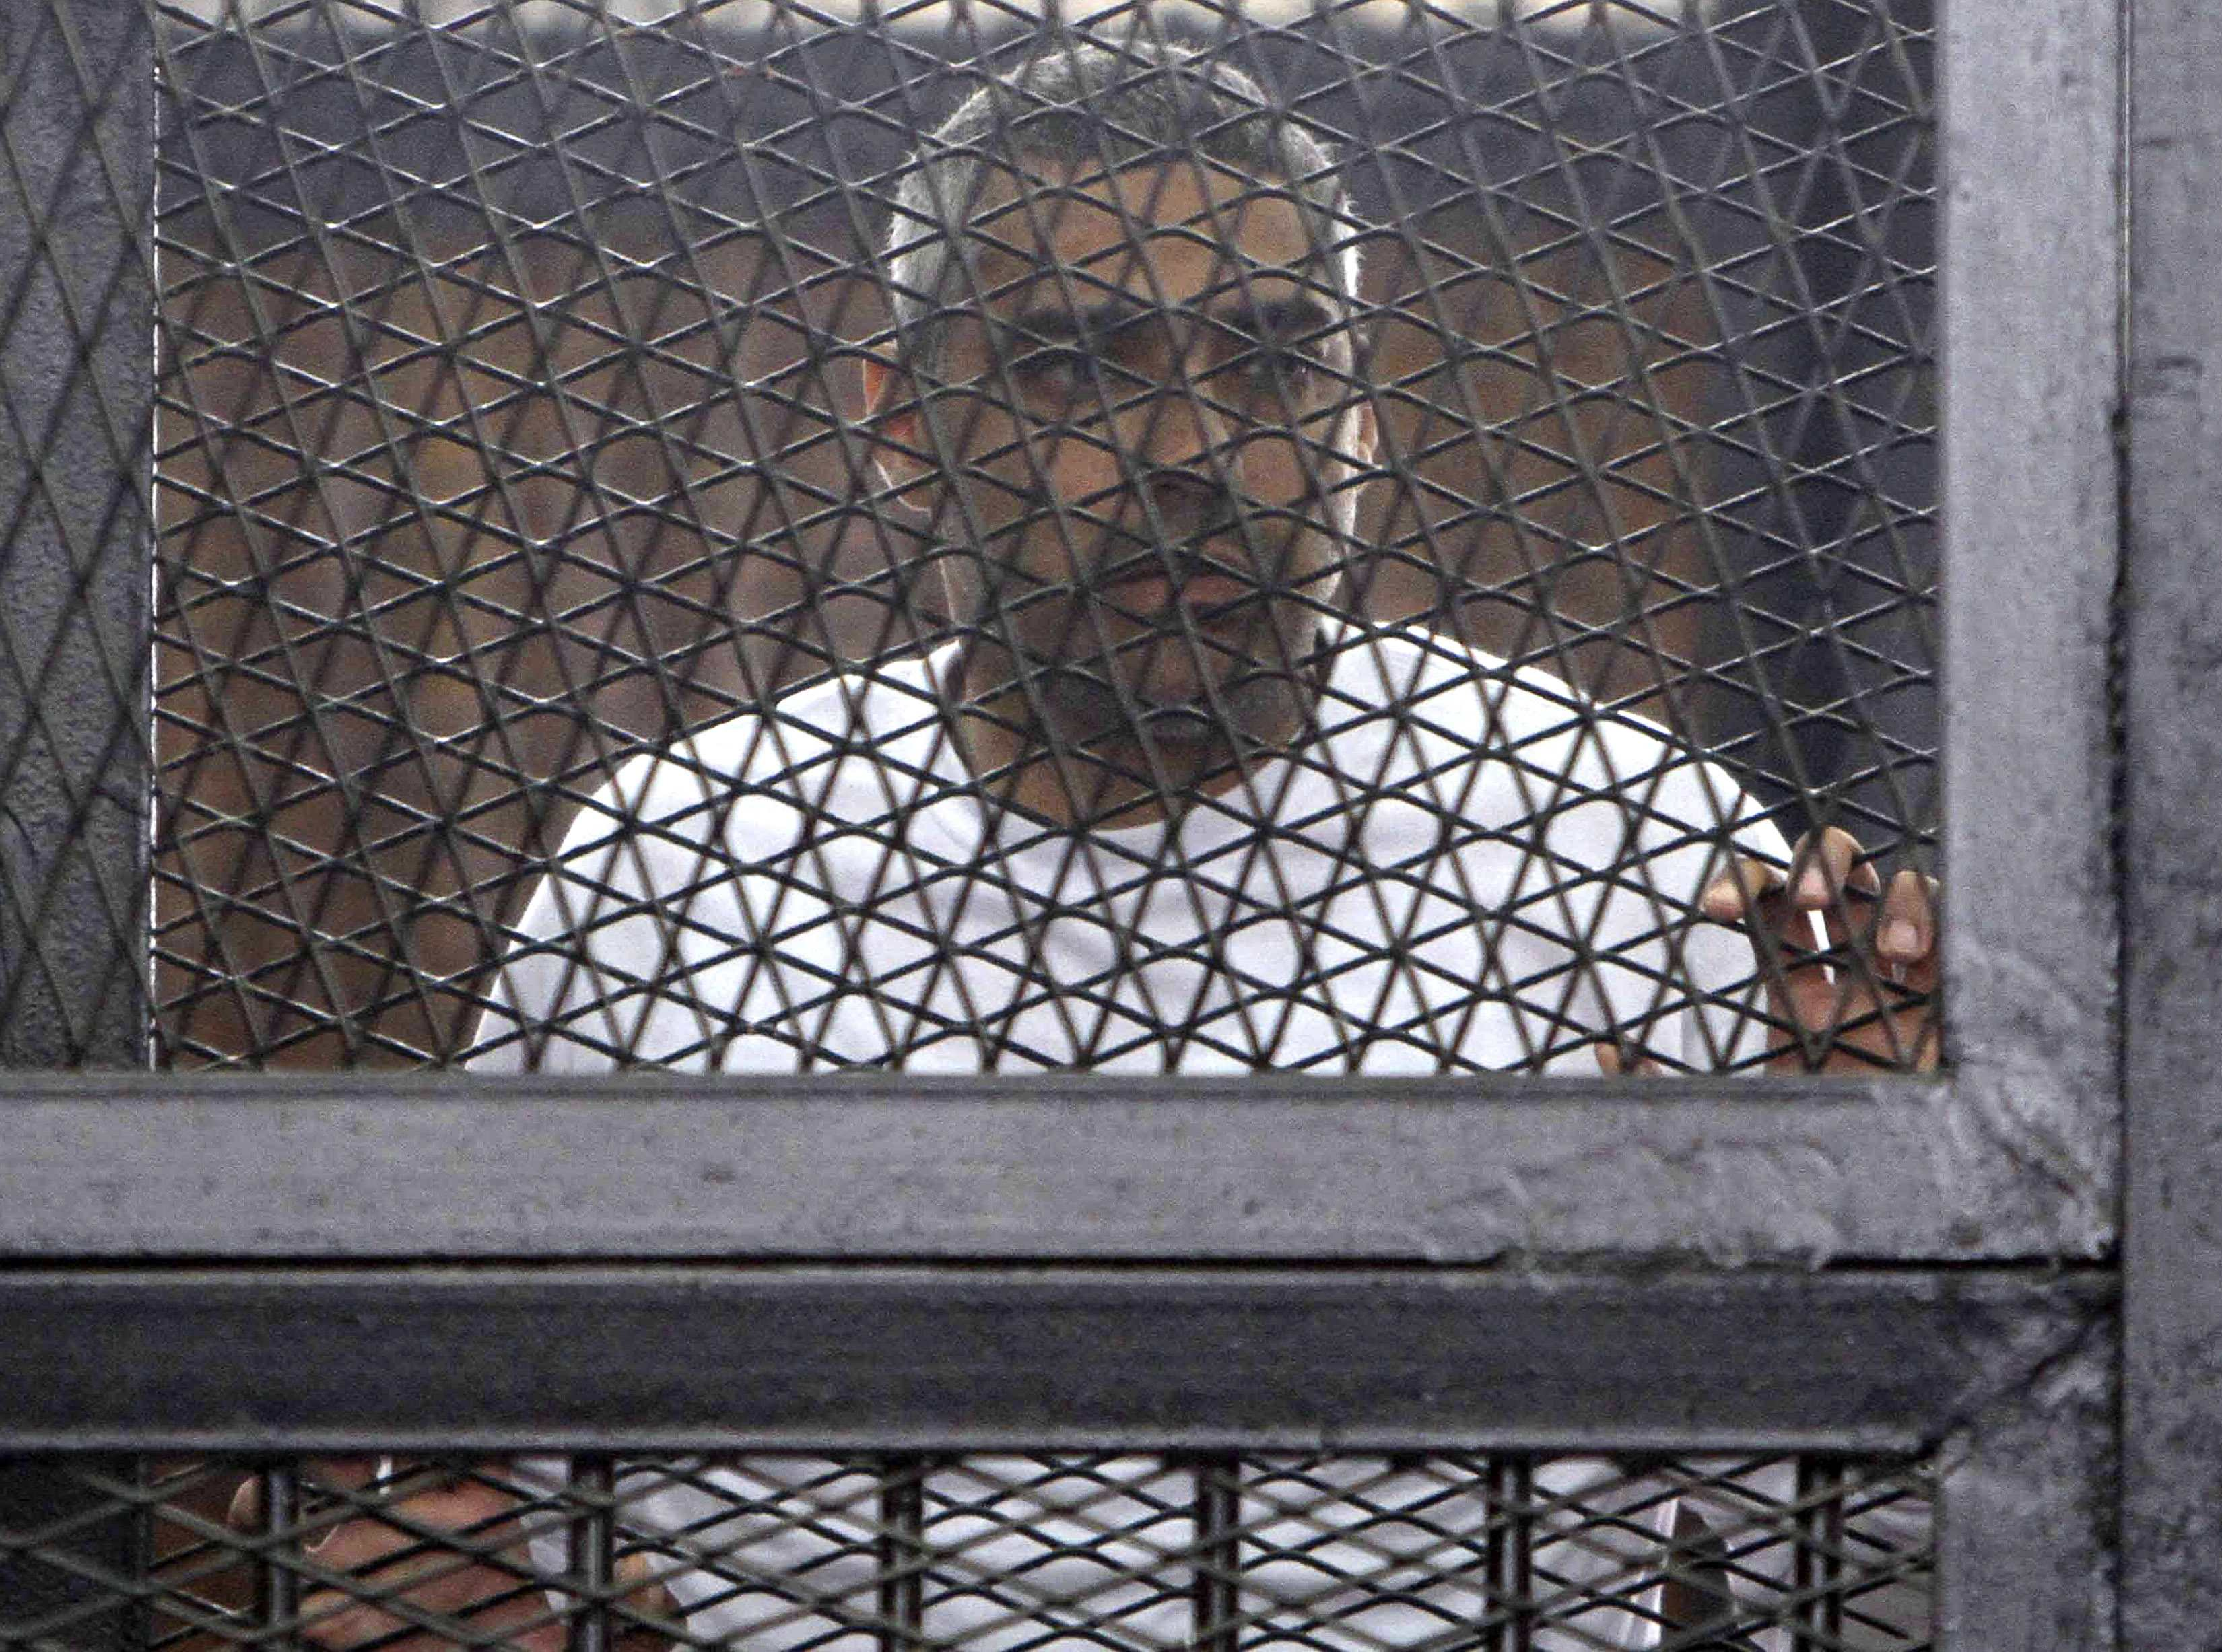 WEB_PHOTO_Egypt_Al-Jazeera_310314